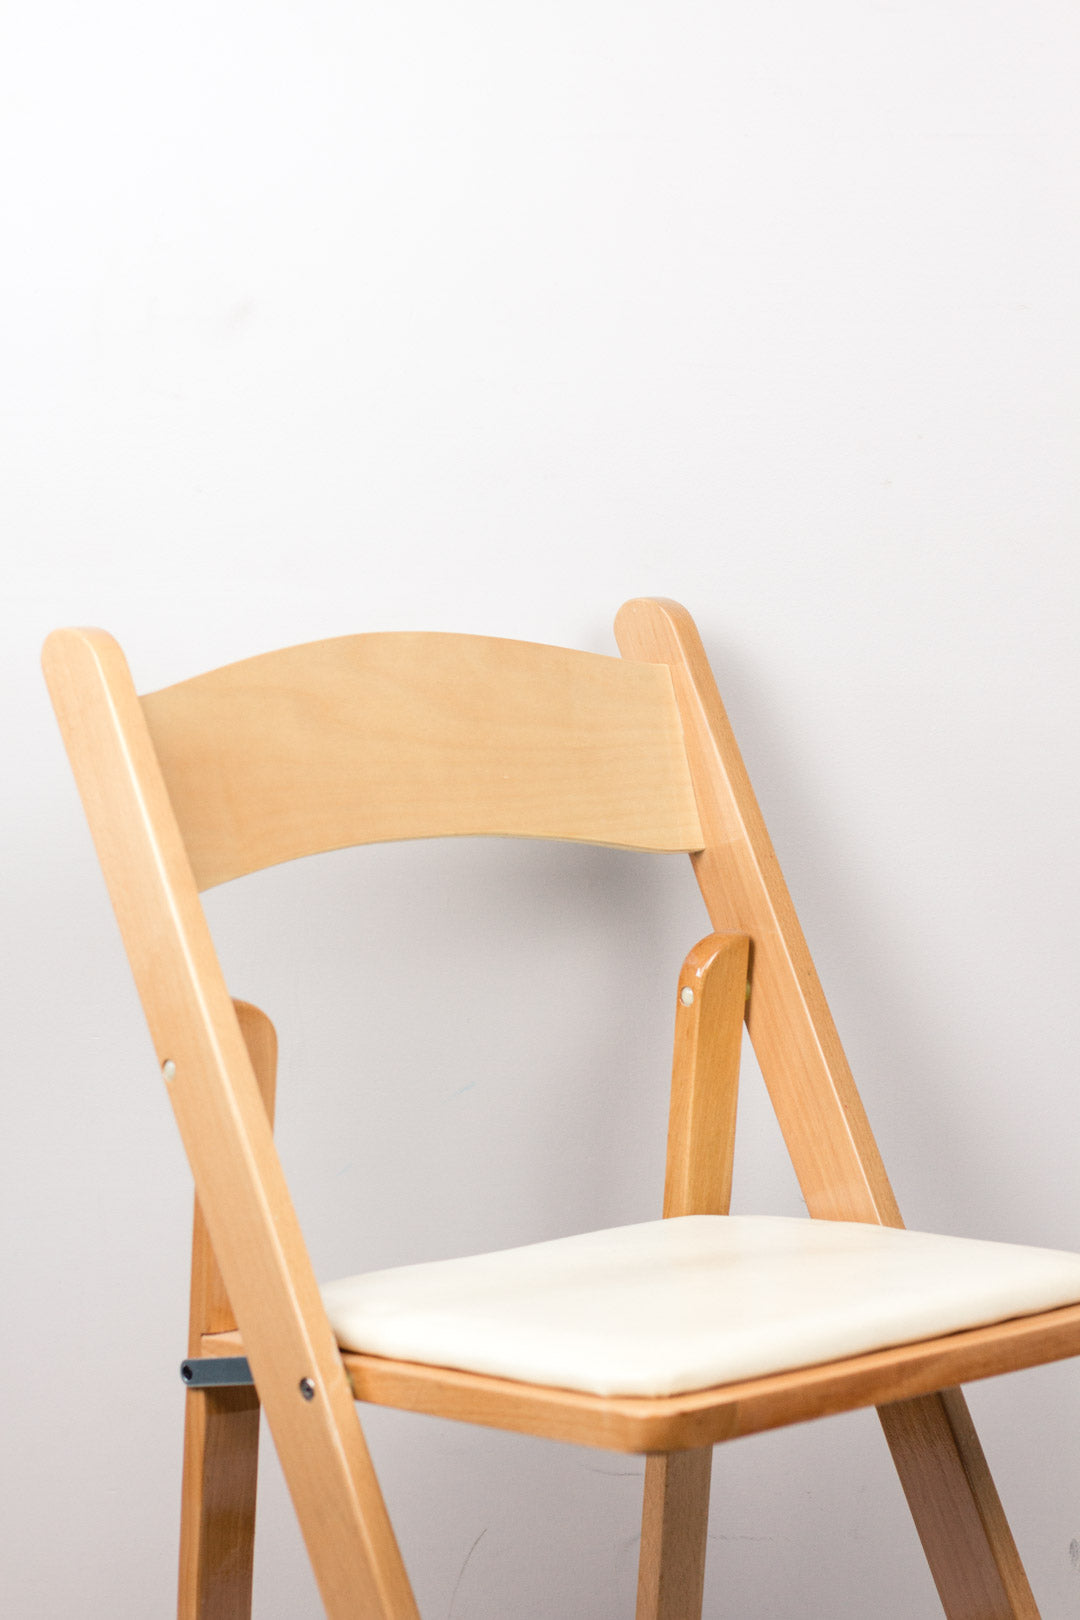 timber americana chairs for sale